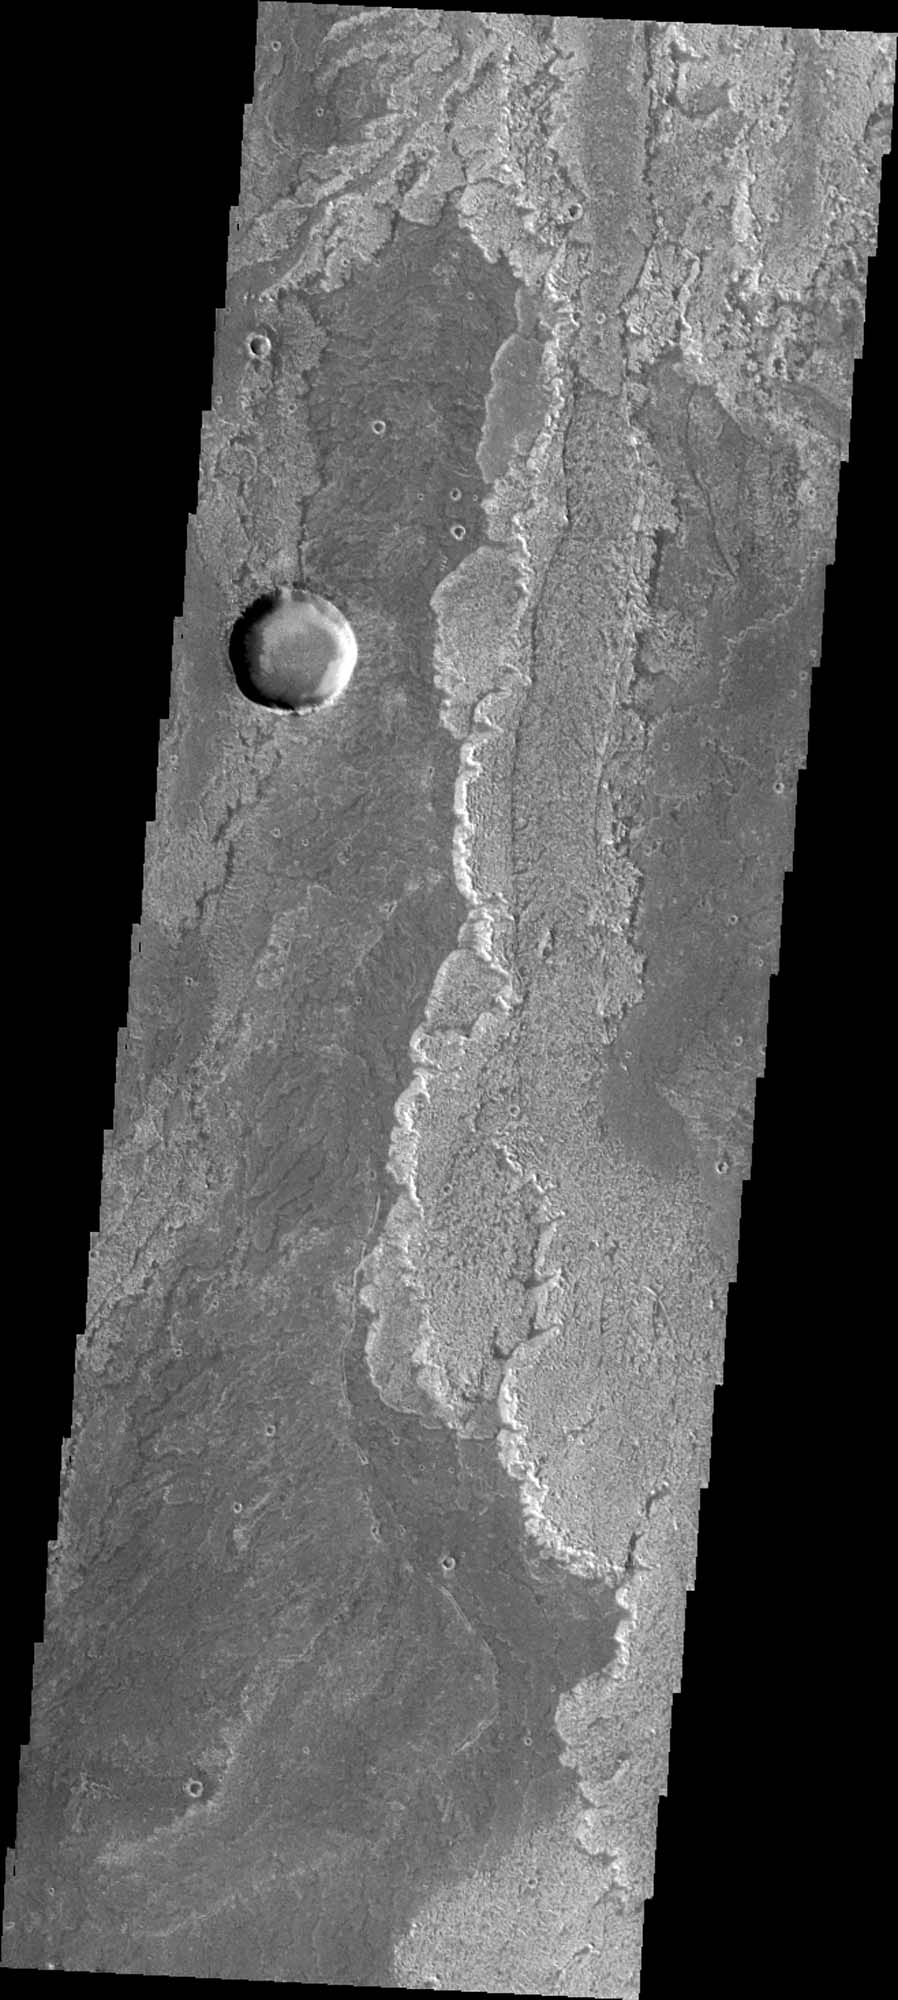 Some of the most pristine volcanic flows on Mars are from Arsia Mons as shown in this image captured by NASA's Mars Odyssey.